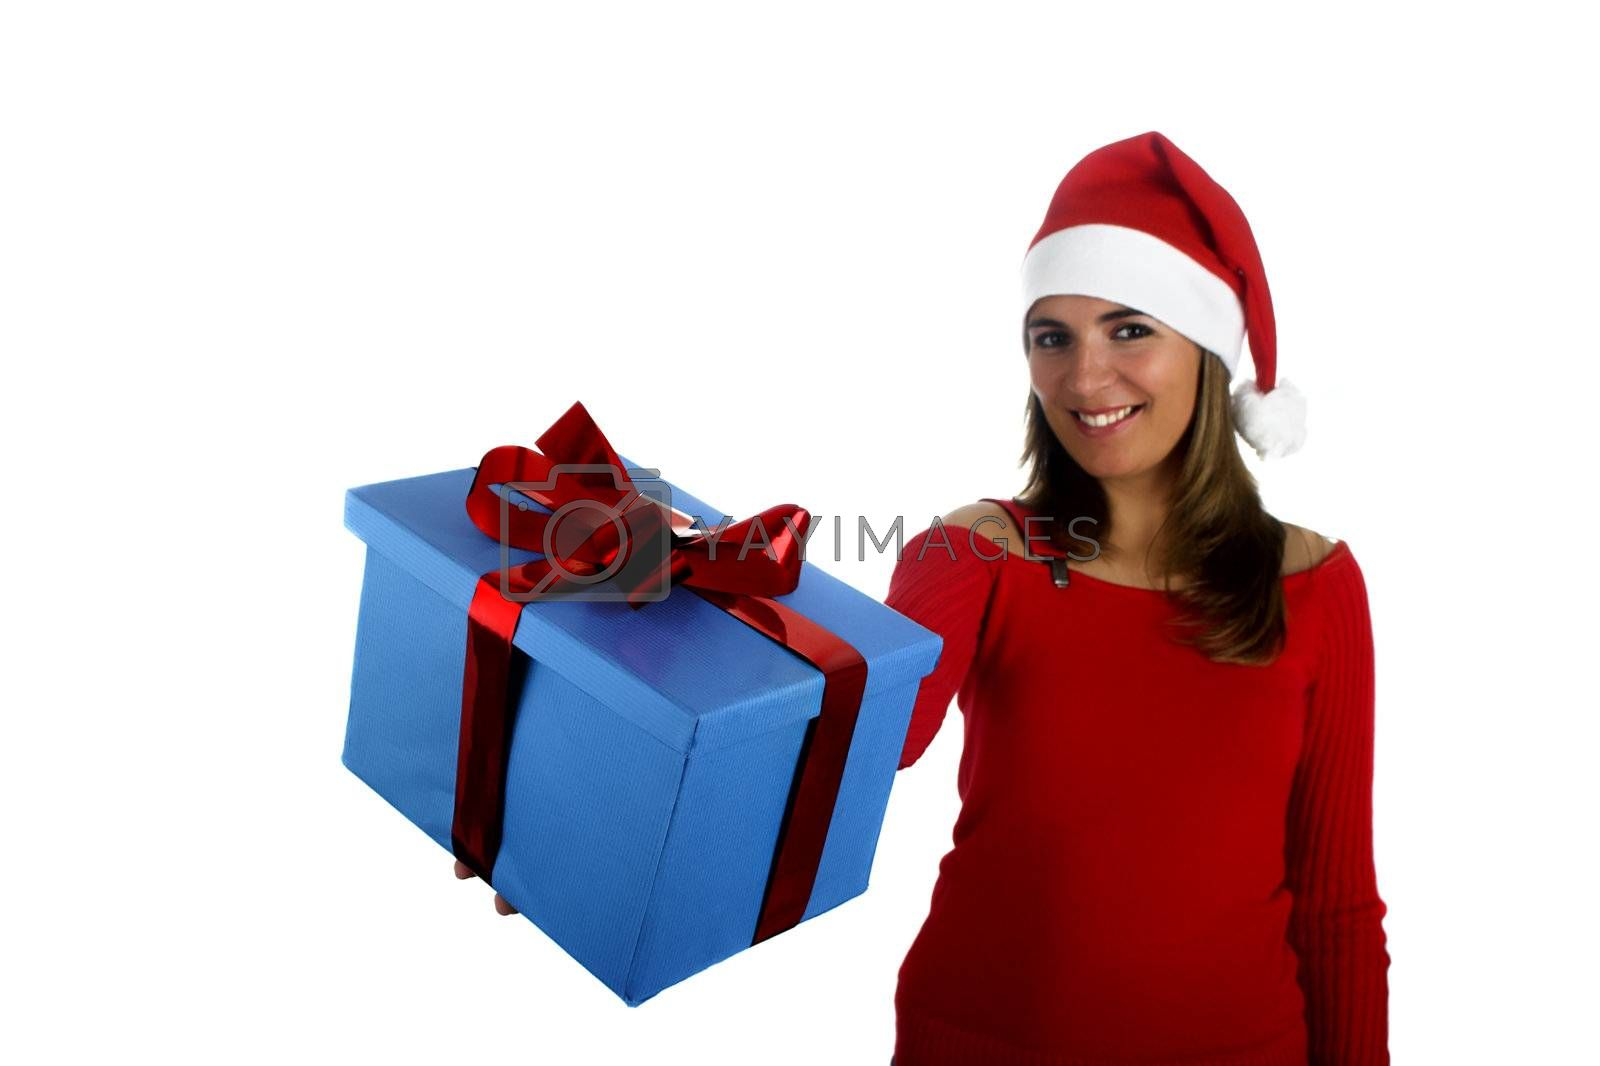 Beautiful santa girl woman with gifts (Focus is on the Gift)